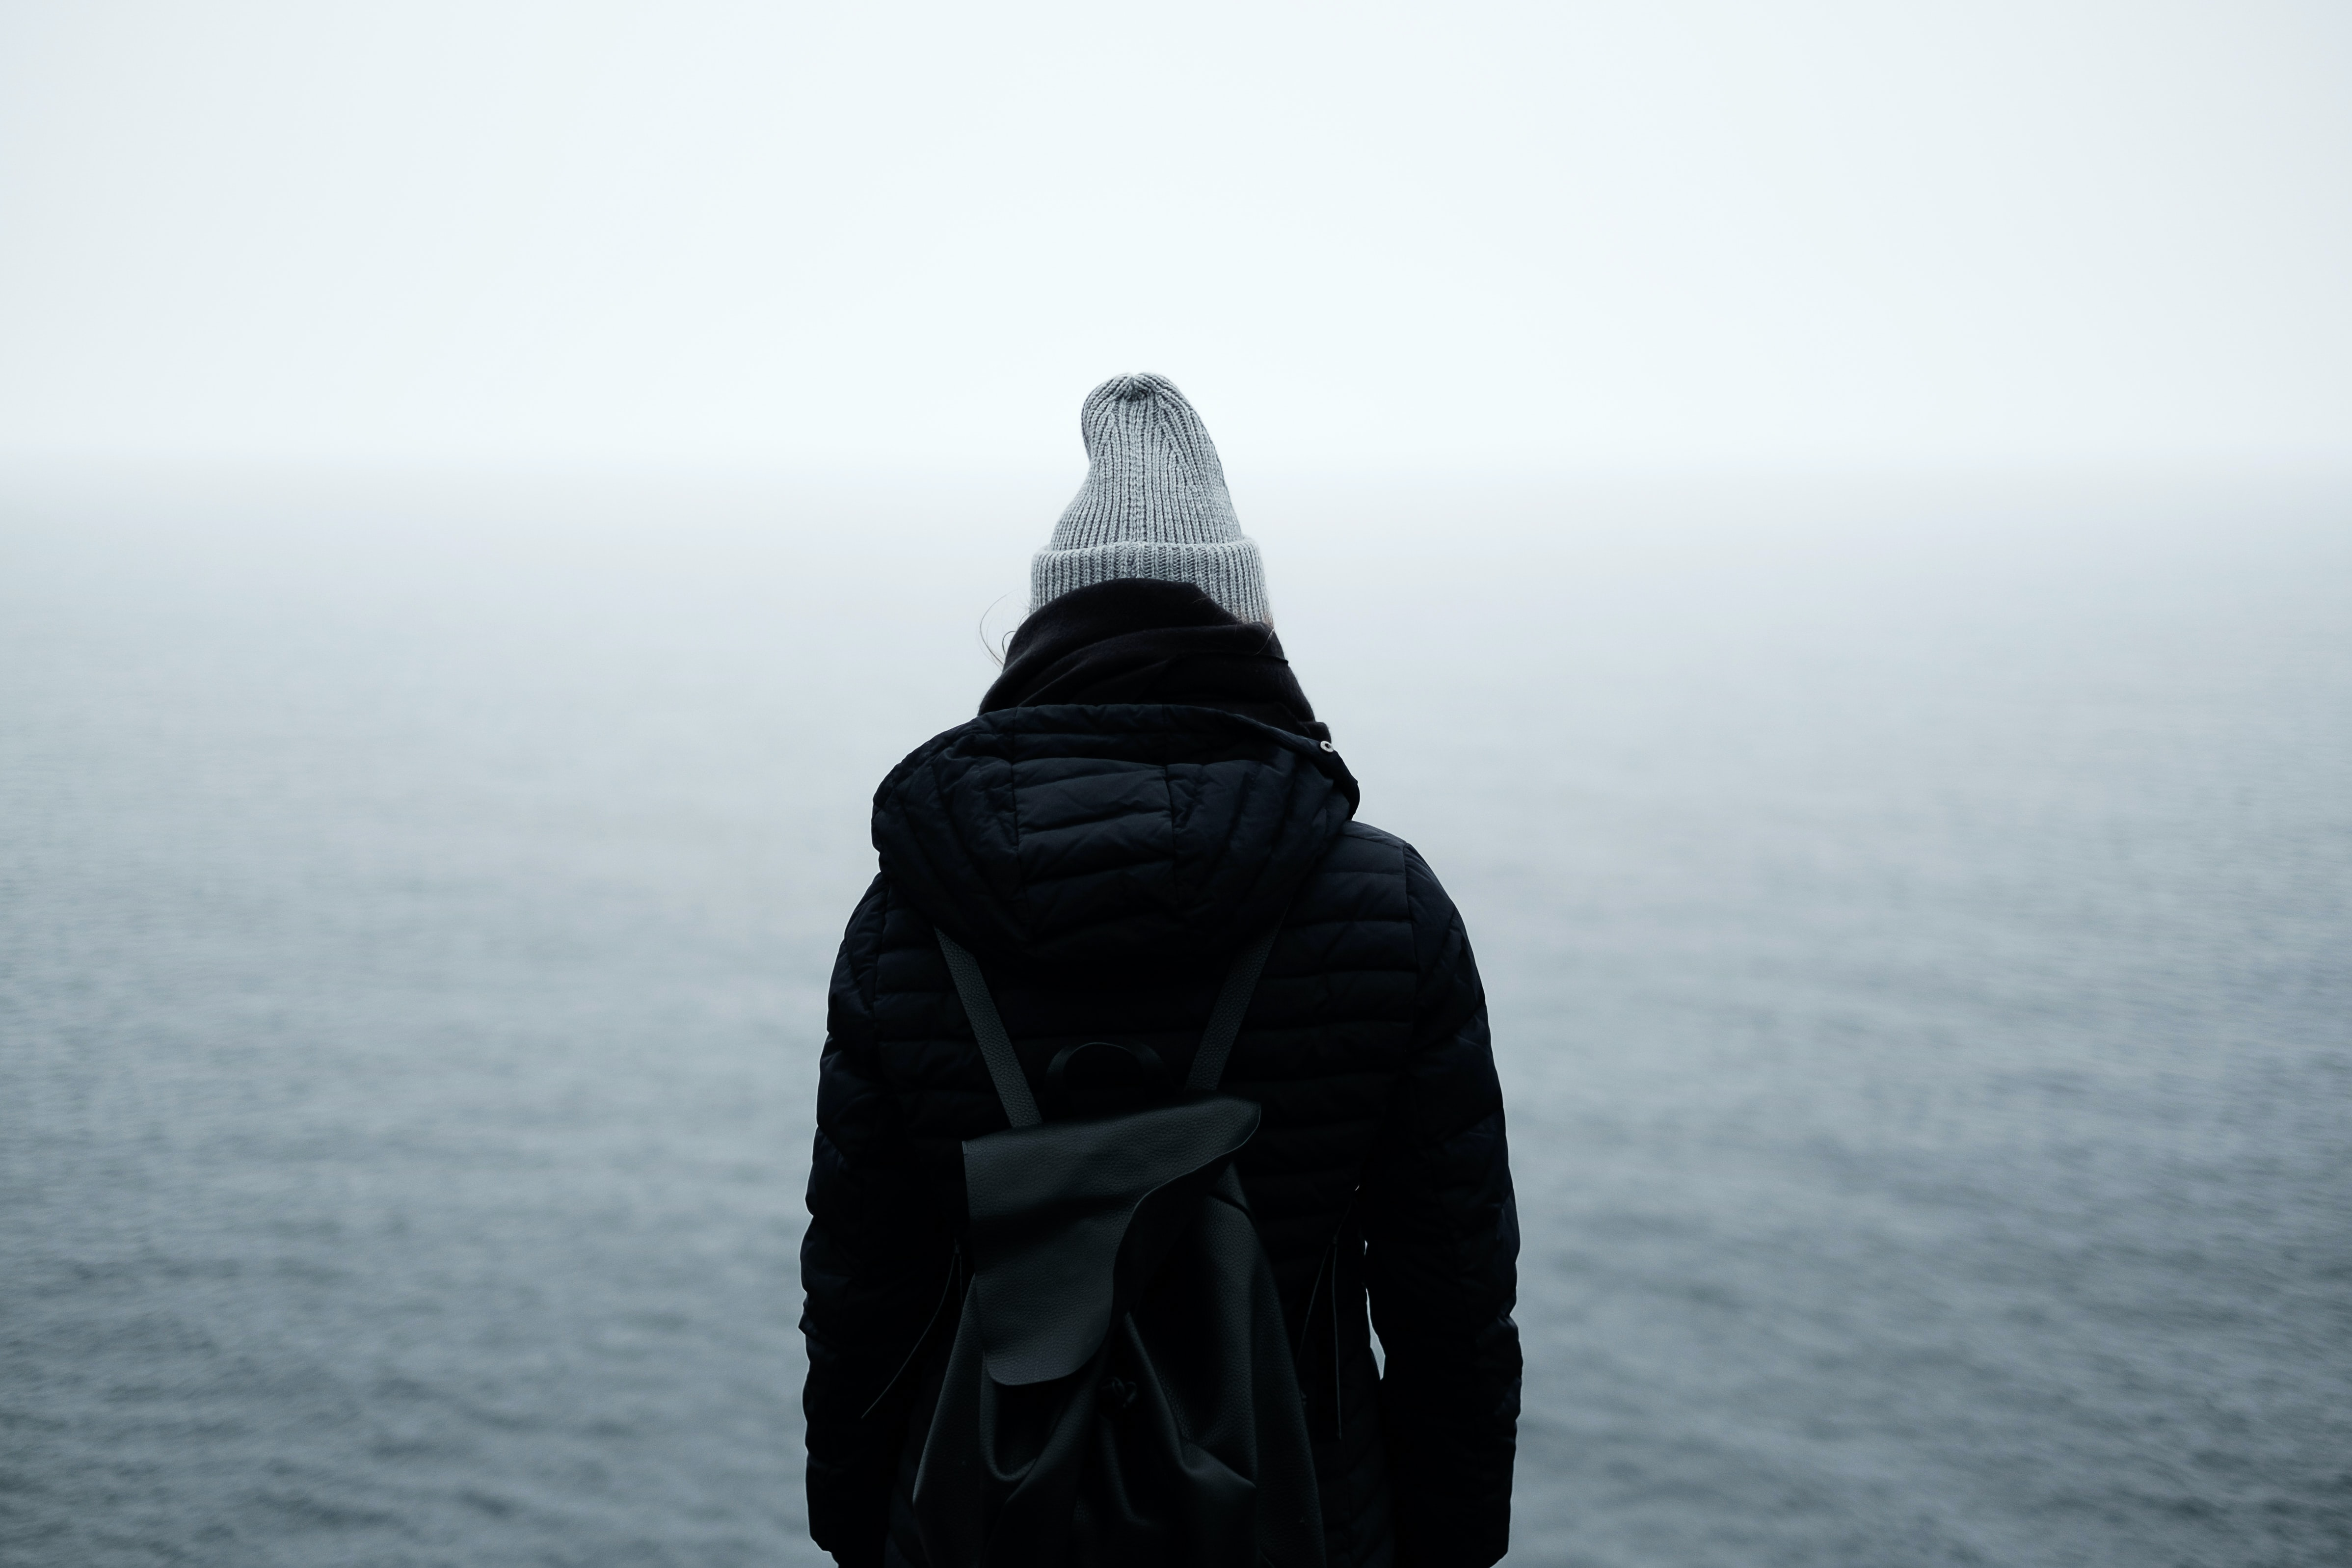 Person in winter wear with backpack watches misty water in Cape Spear